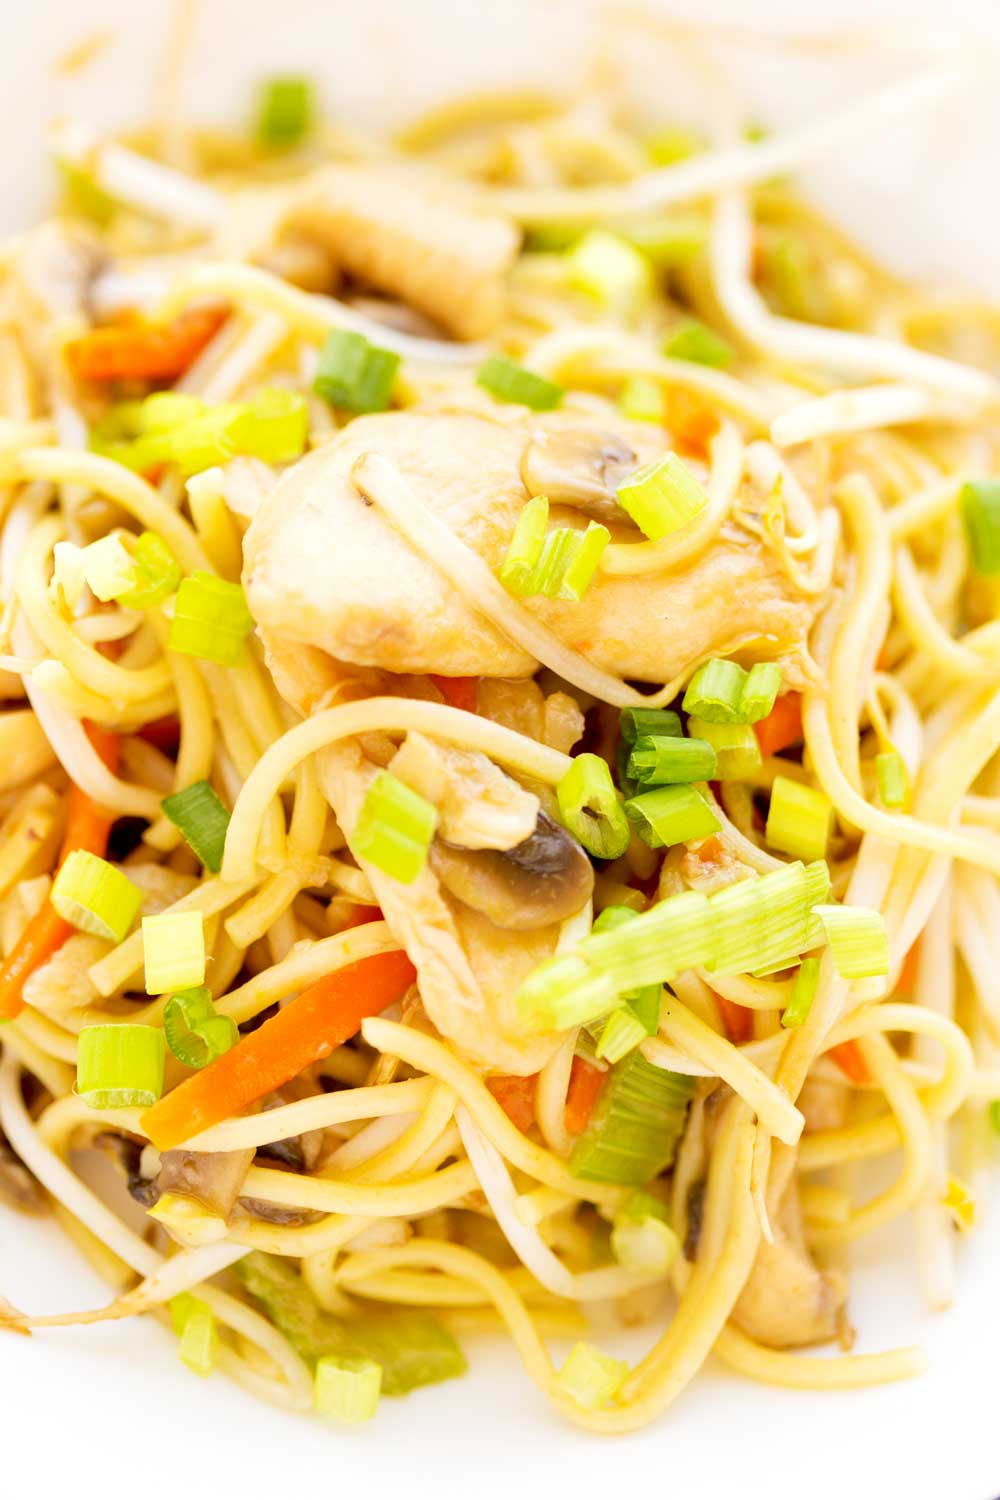 Chow Mein made from scratch.